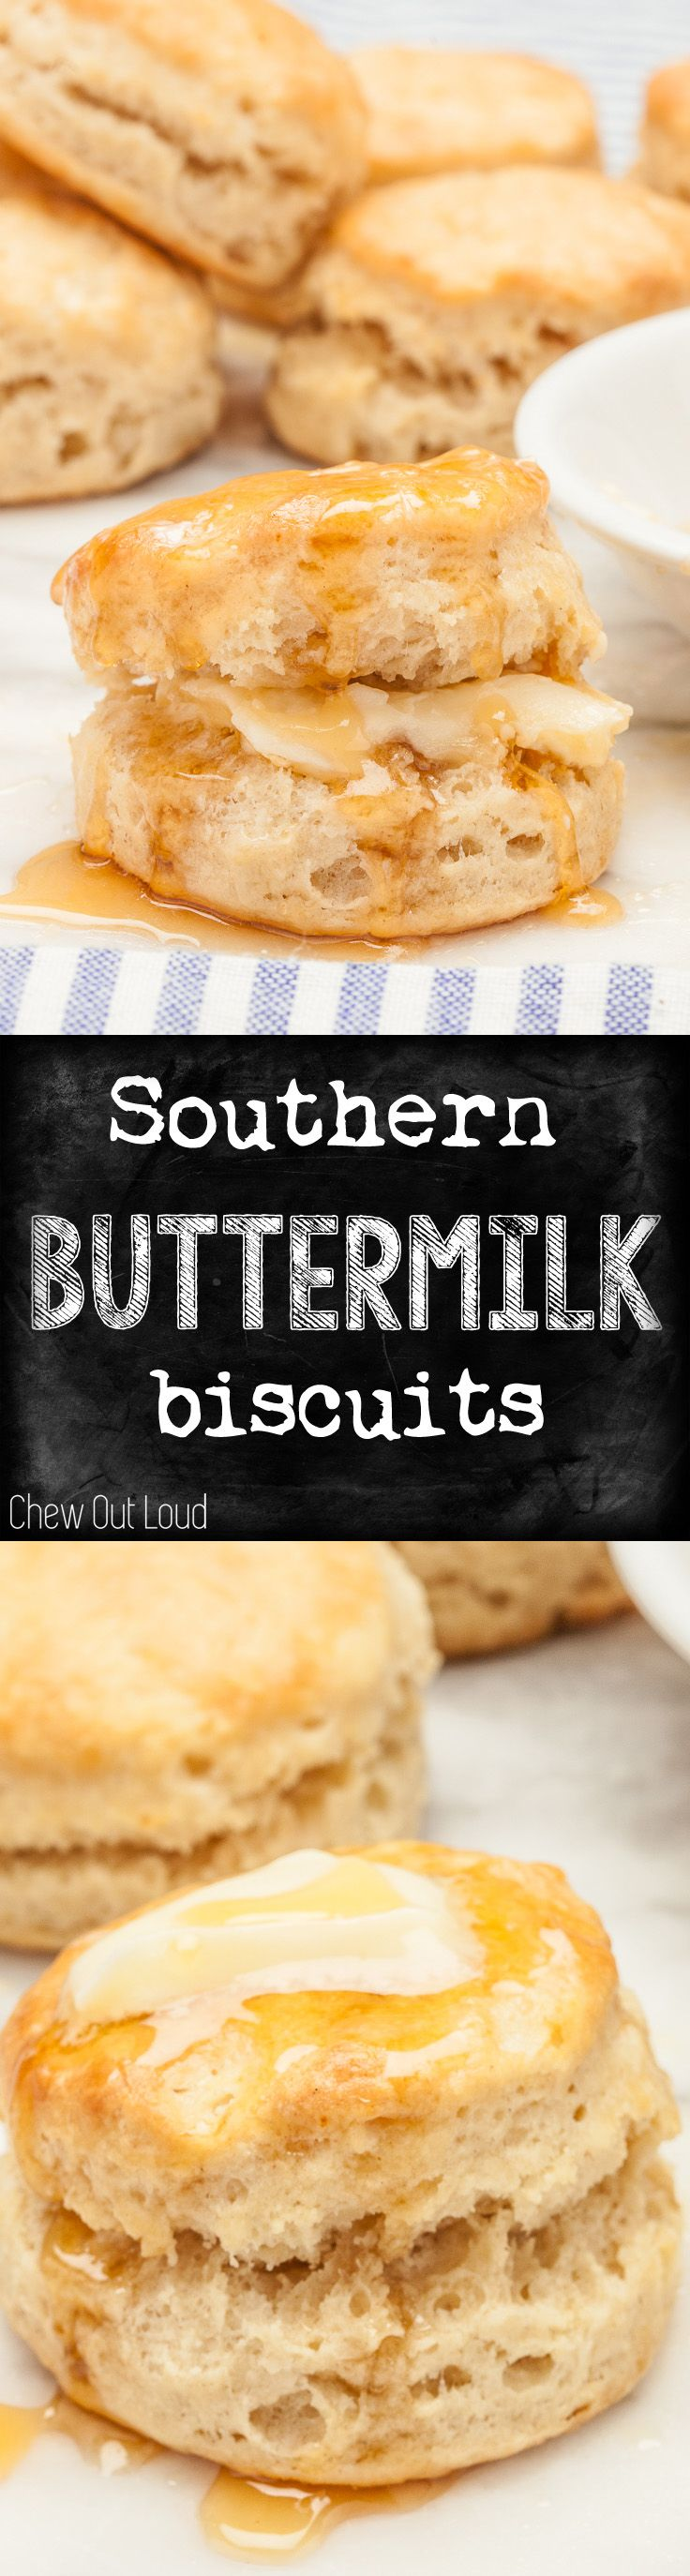 These are THE Best Buttermilk Biscuits! Golden, fluffy, tender, moist, soft, and melt-in-your-mouth!